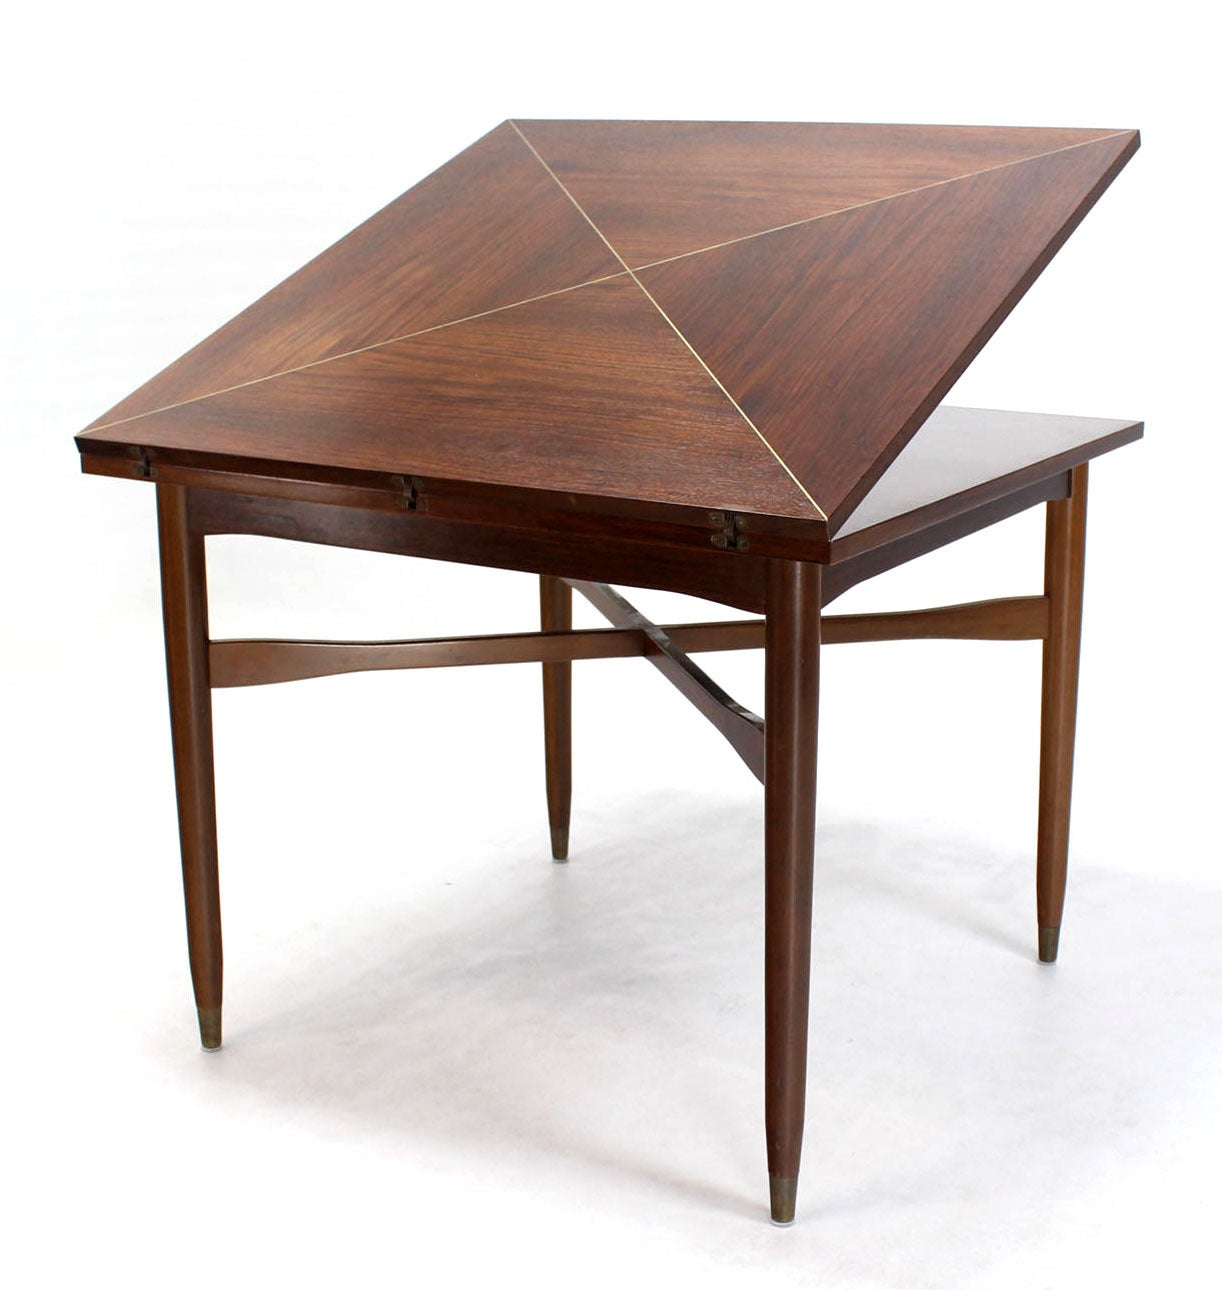 Walnut Top with Brass Inlay Mid Century Modern Expandable  : IMG4864 1 from 1stdibs.com size 1222 x 1290 jpeg 111kB